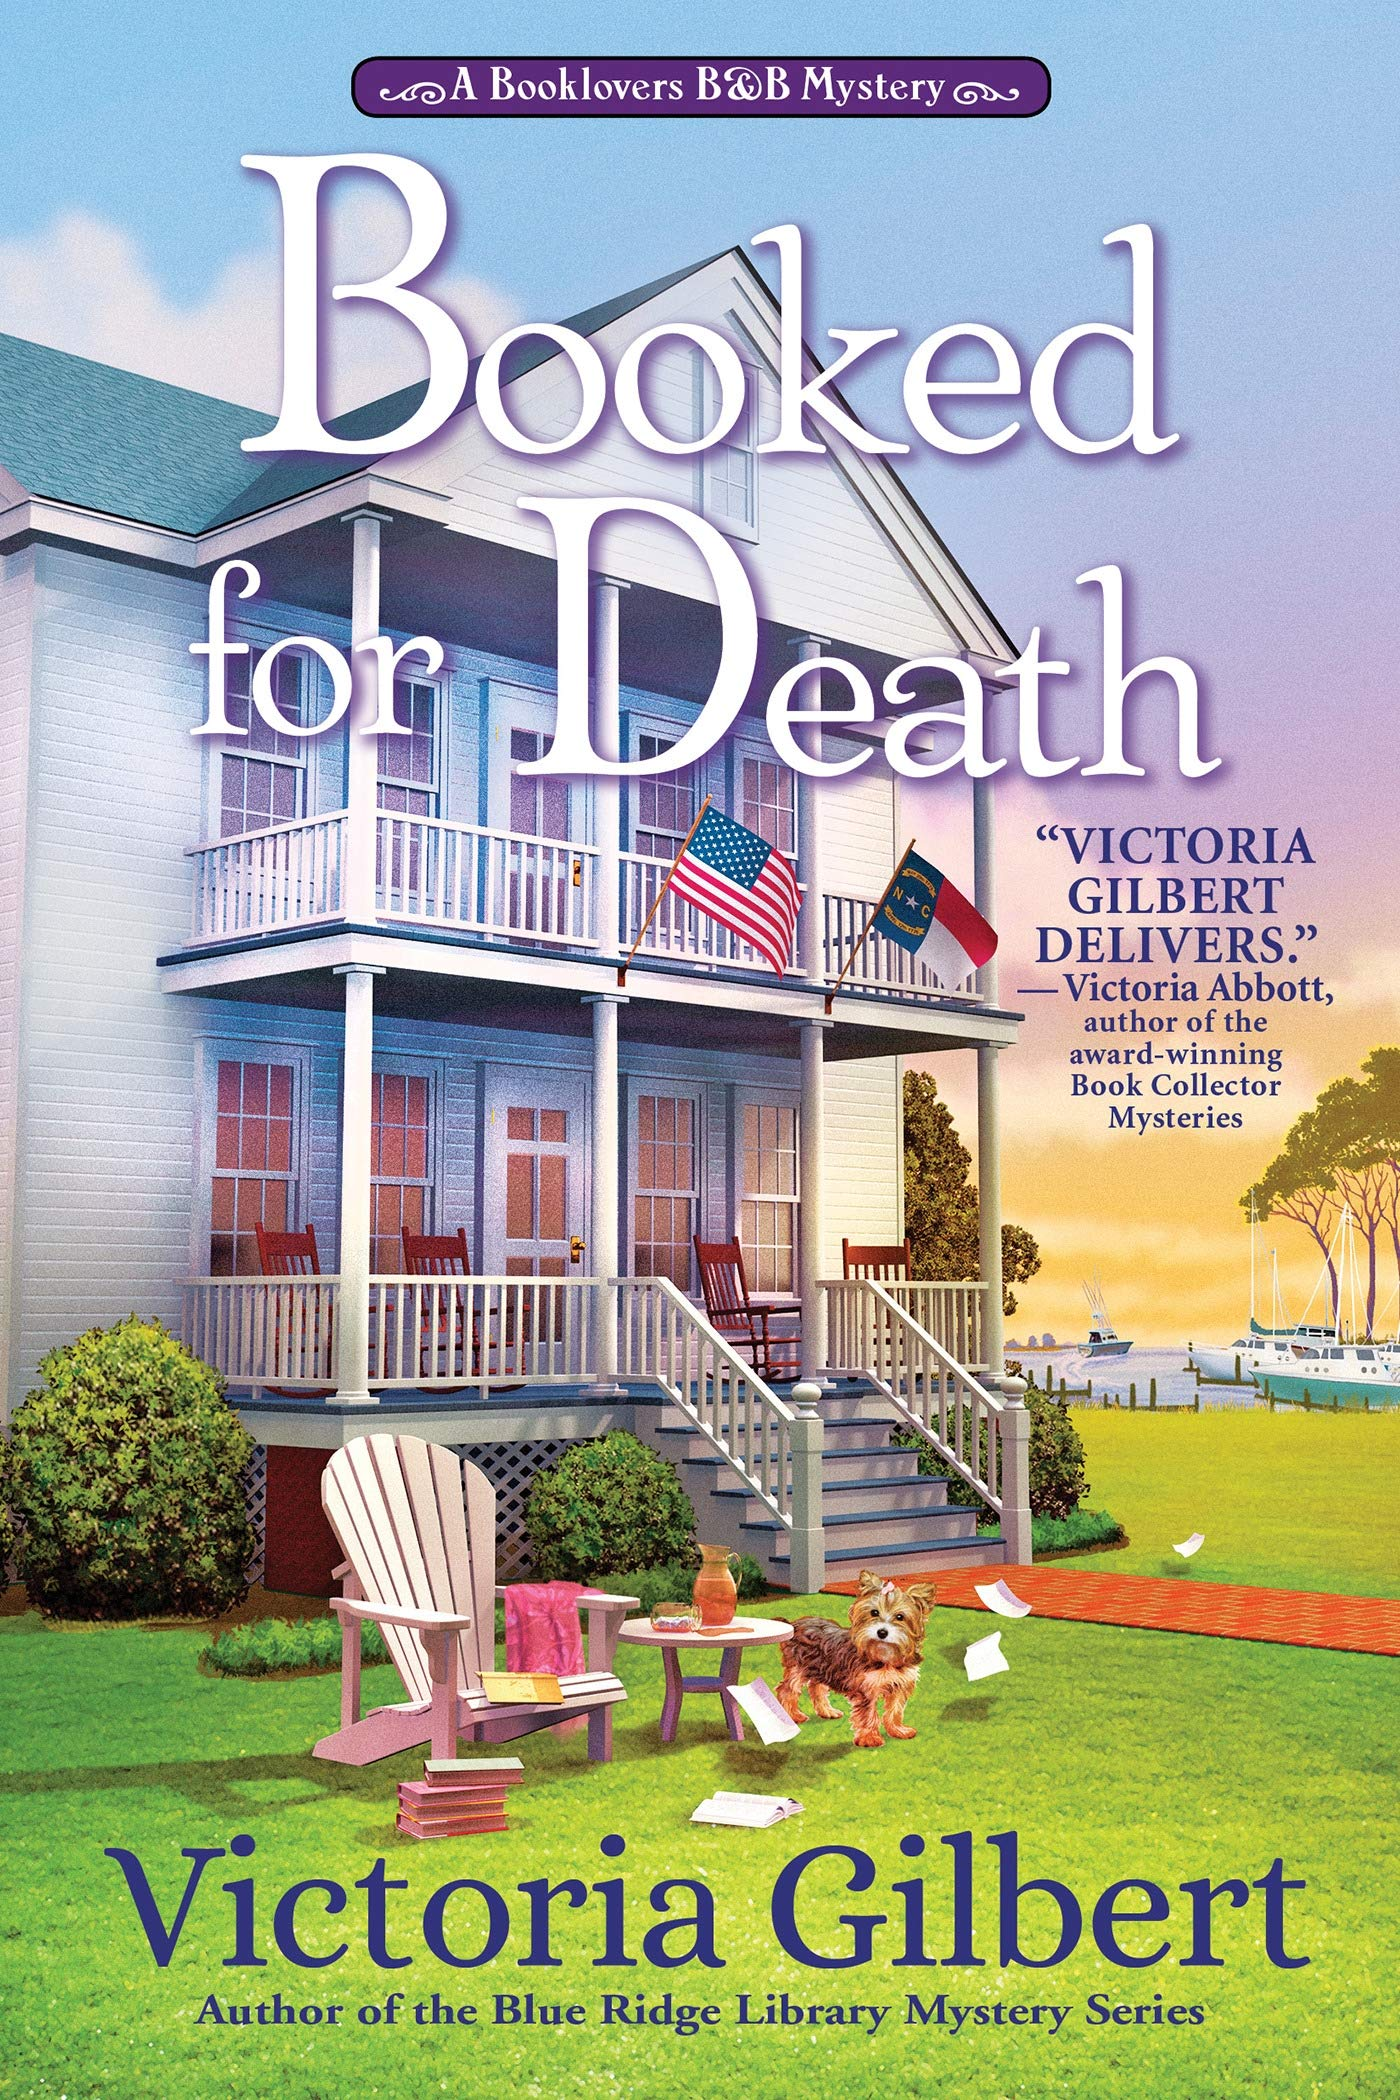 Booked for Death: A Booklovers B&B Mystery